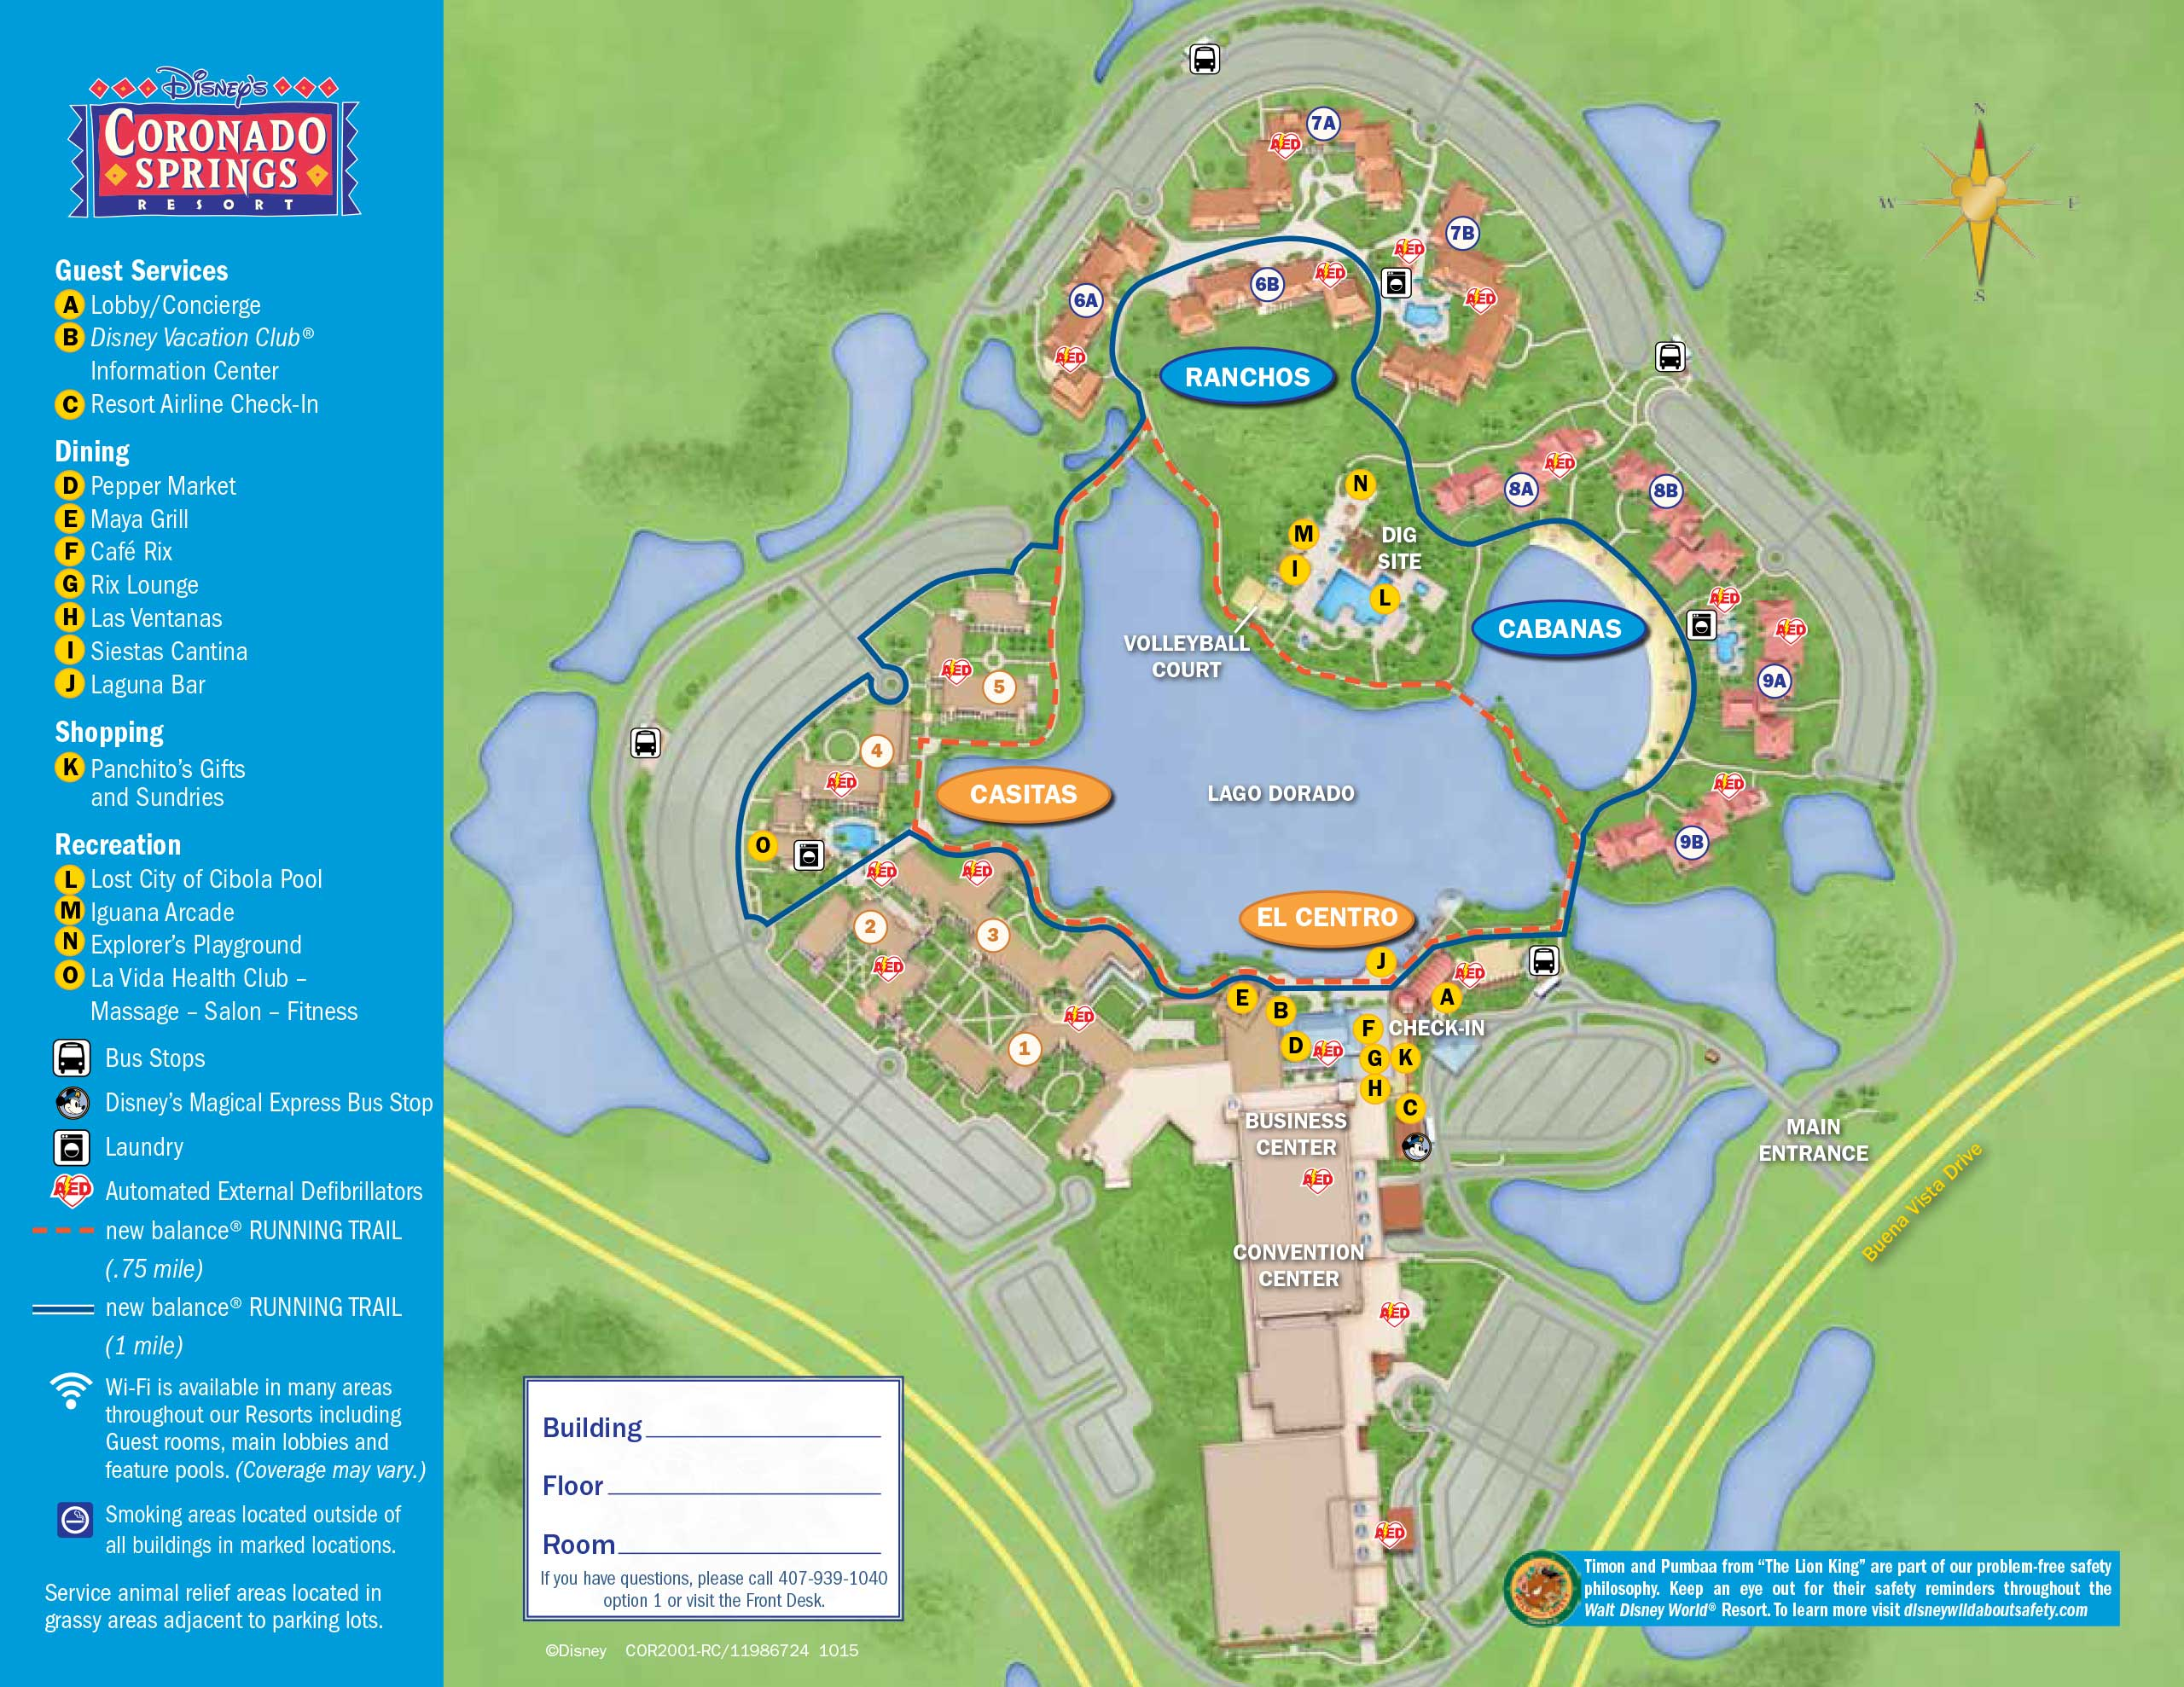 April 2017 Walt Disney World Resort Hotel Maps - Photo 11 of 33